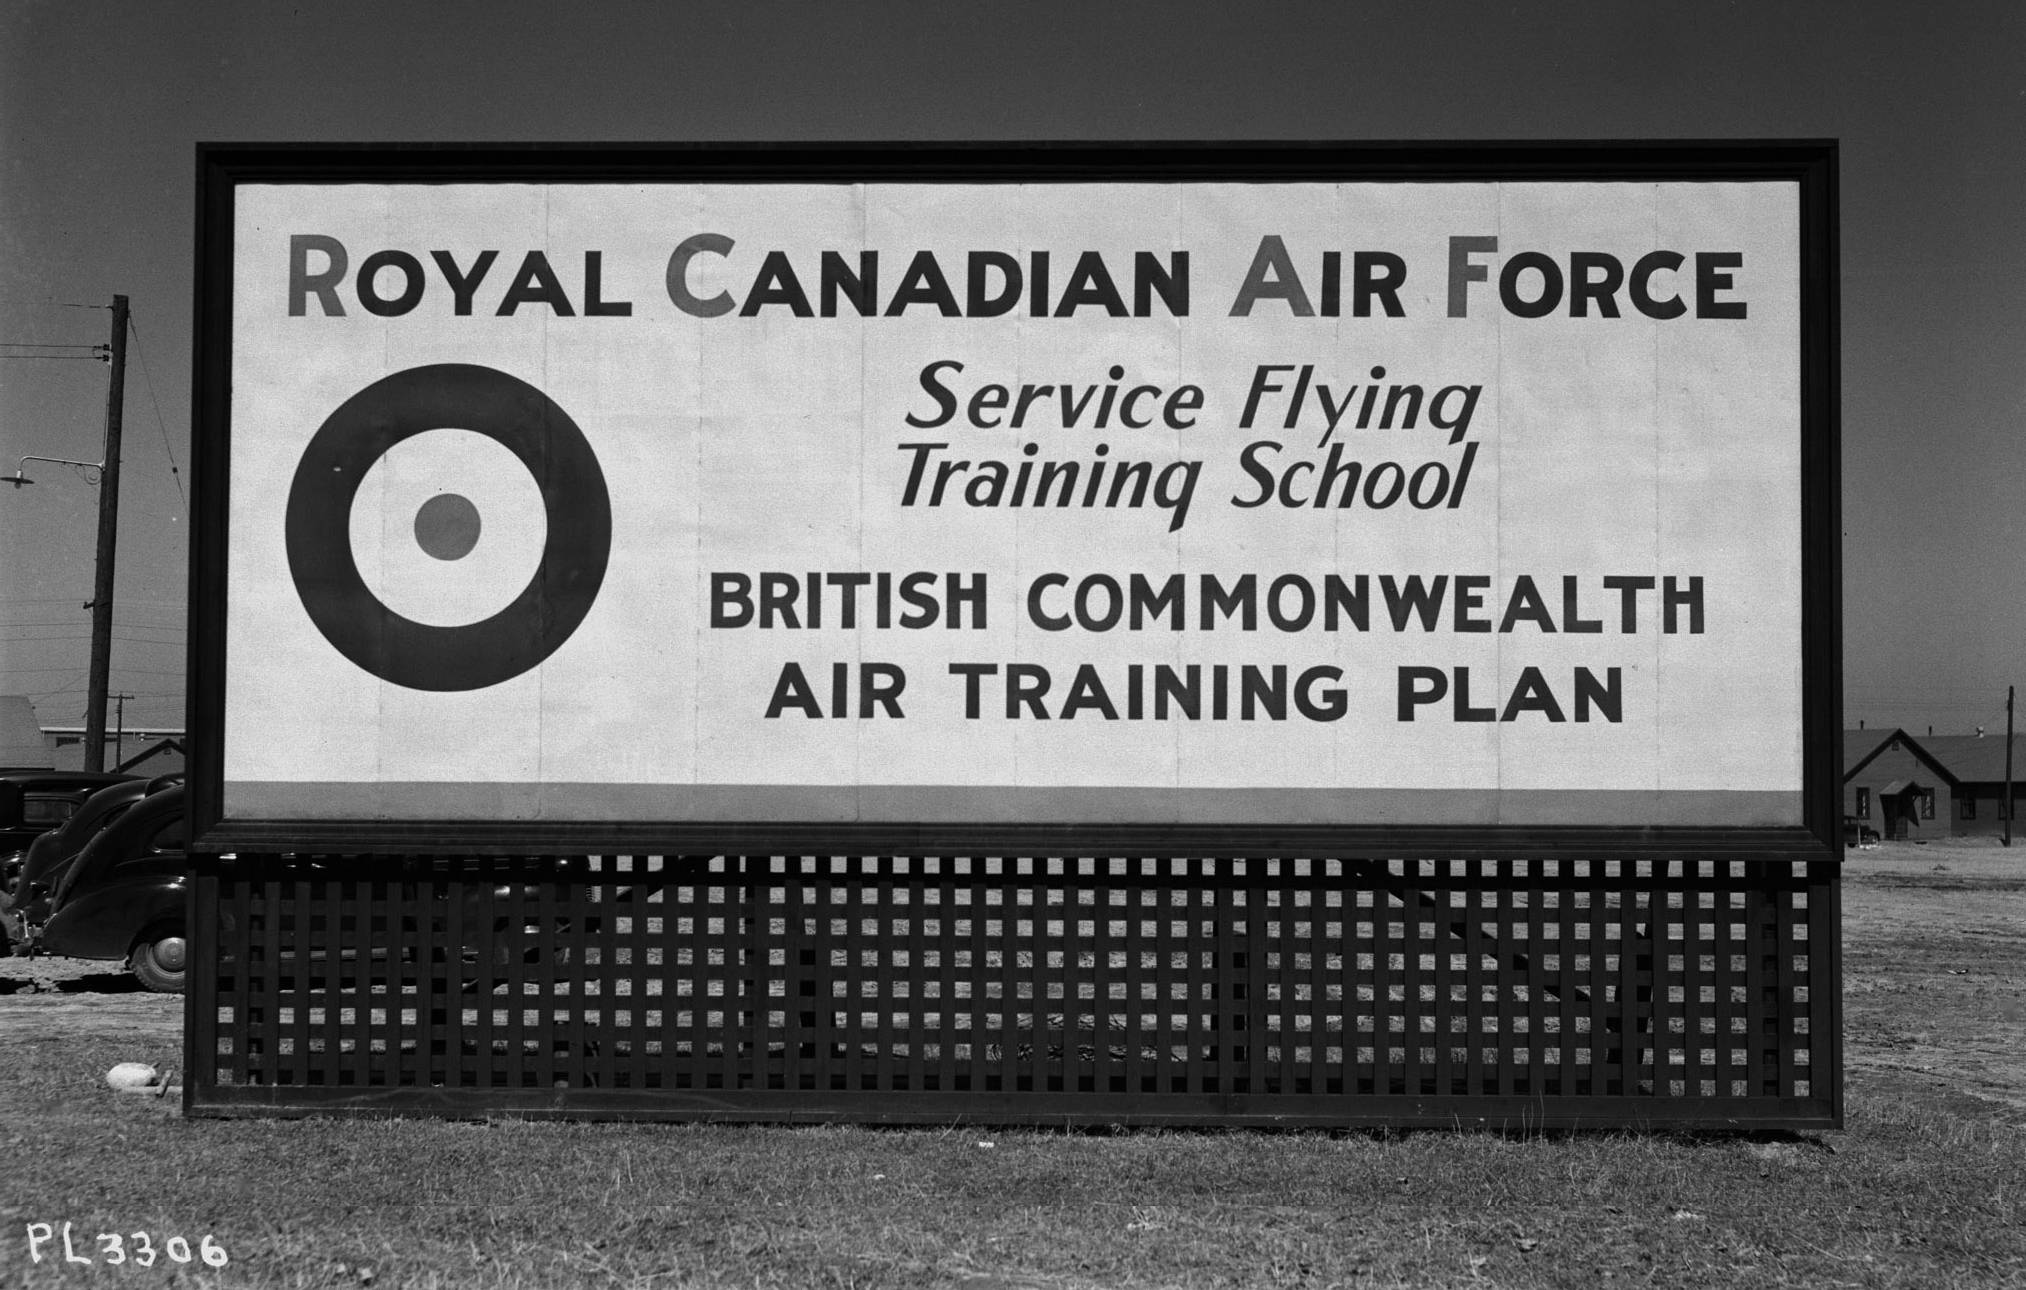 Signs such as this became part A large white sign with black lettering and an Air Force roundel in the corner.of the Canadian landscape as schools and airfields opened throughout the nation under the British Commonwealth Air Training Plan.